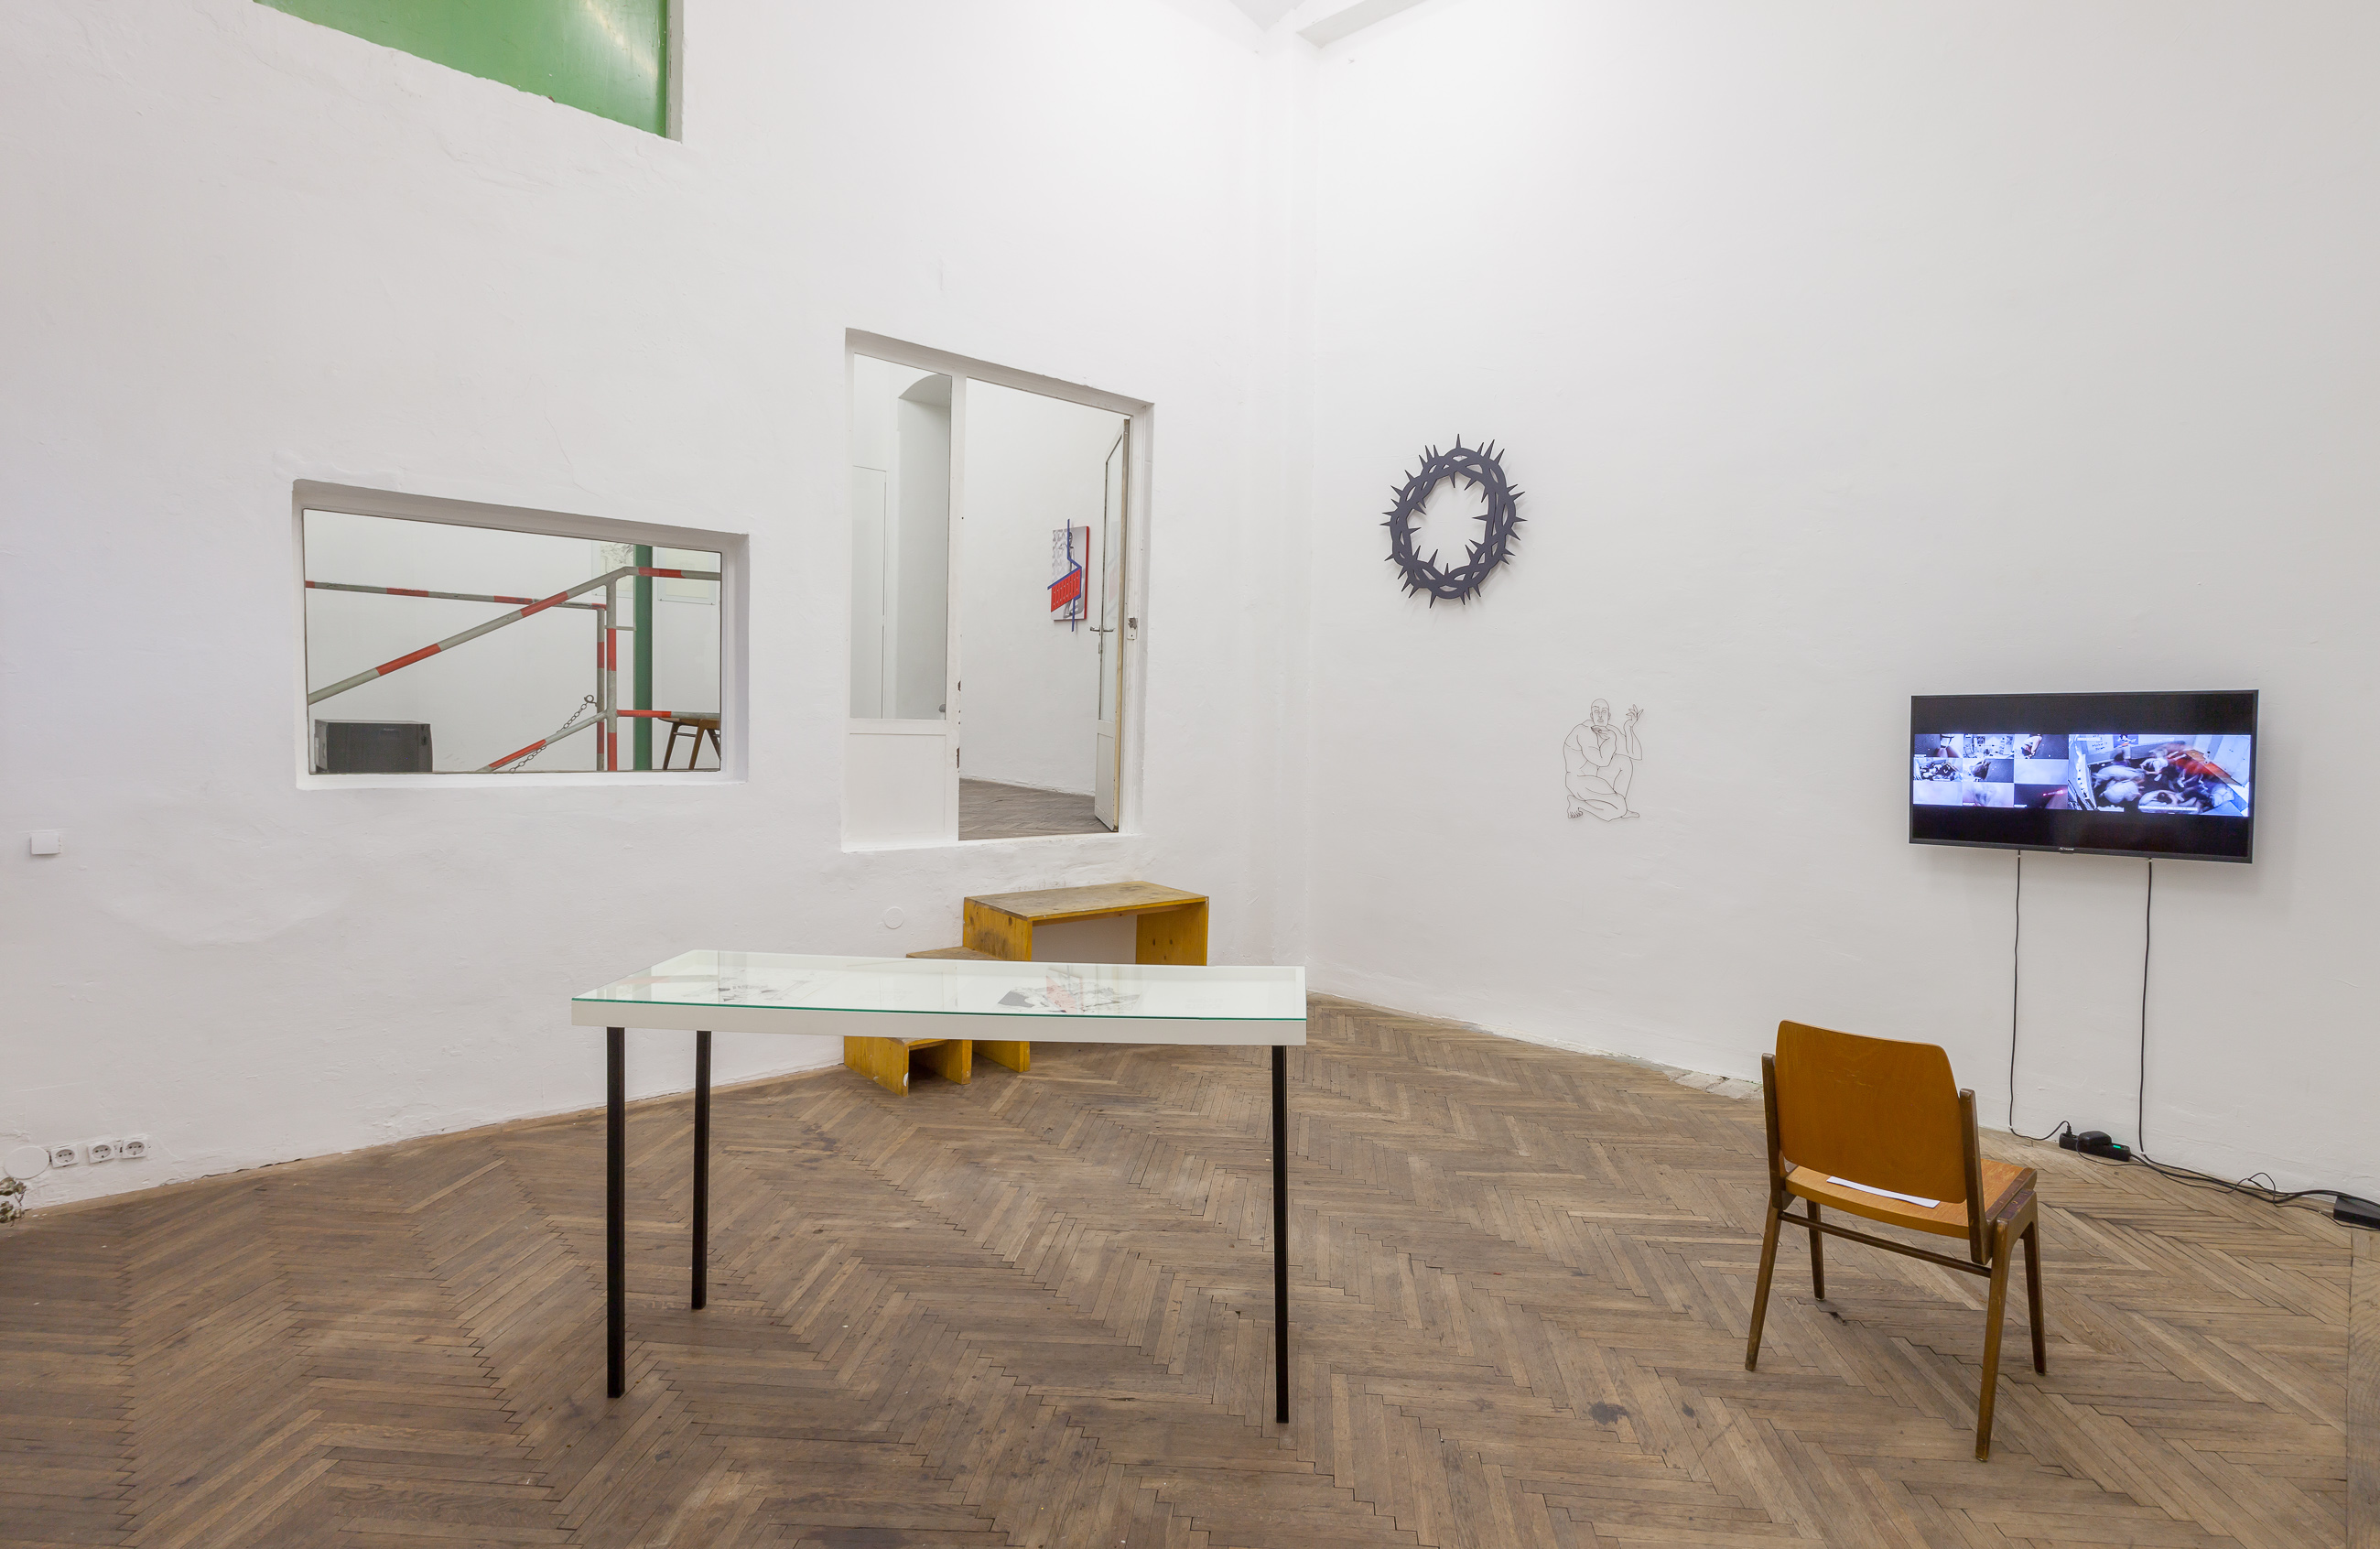 The will to change, exhibiton view, 2020